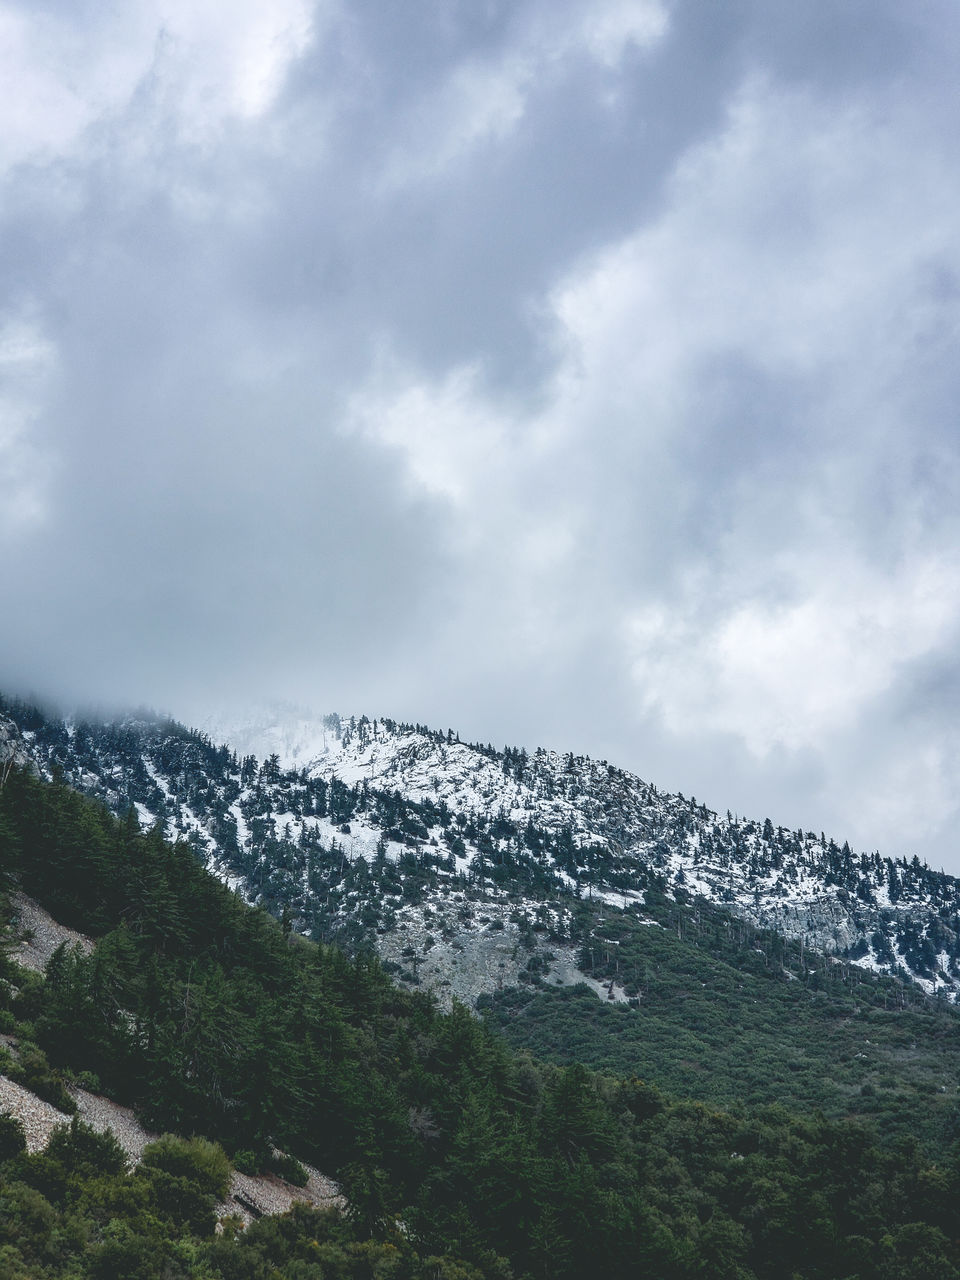 cloud - sky, sky, beauty in nature, mountain, scenics - nature, snow, tranquil scene, tranquility, cold temperature, winter, environment, no people, nature, landscape, non-urban scene, day, outdoors, tree, plant, snowcapped mountain, mountain peak, mountain range, range